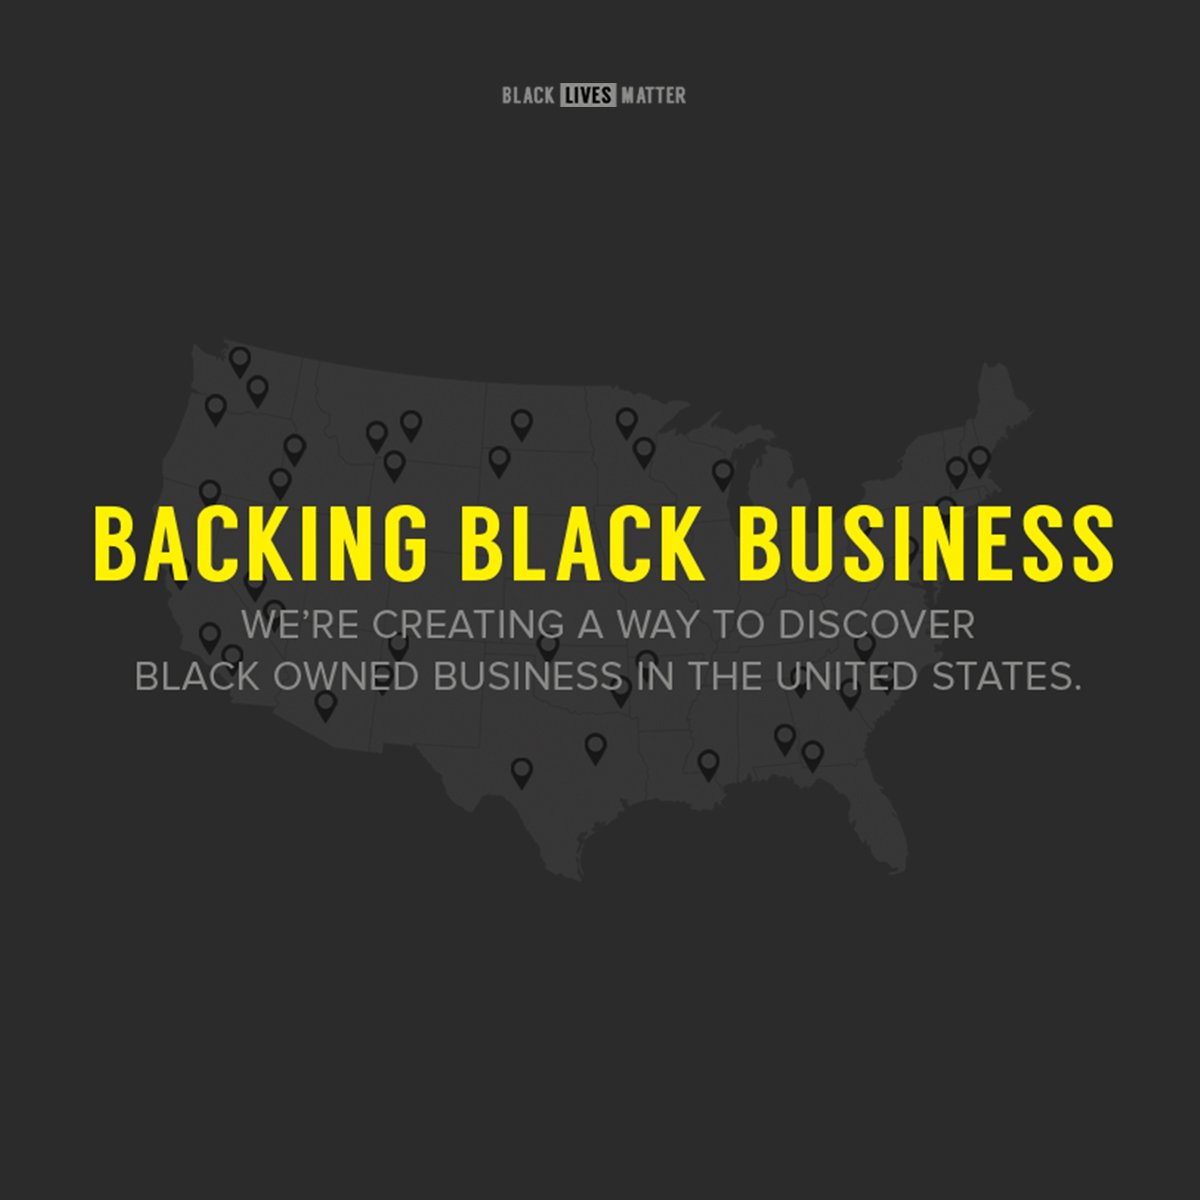 Proud to begin our partnership with @Blklivesmatter with the launch of #BackingBlackBusiness https://t.co/yyTgKatpAj https://t.co/9GXCOG053h